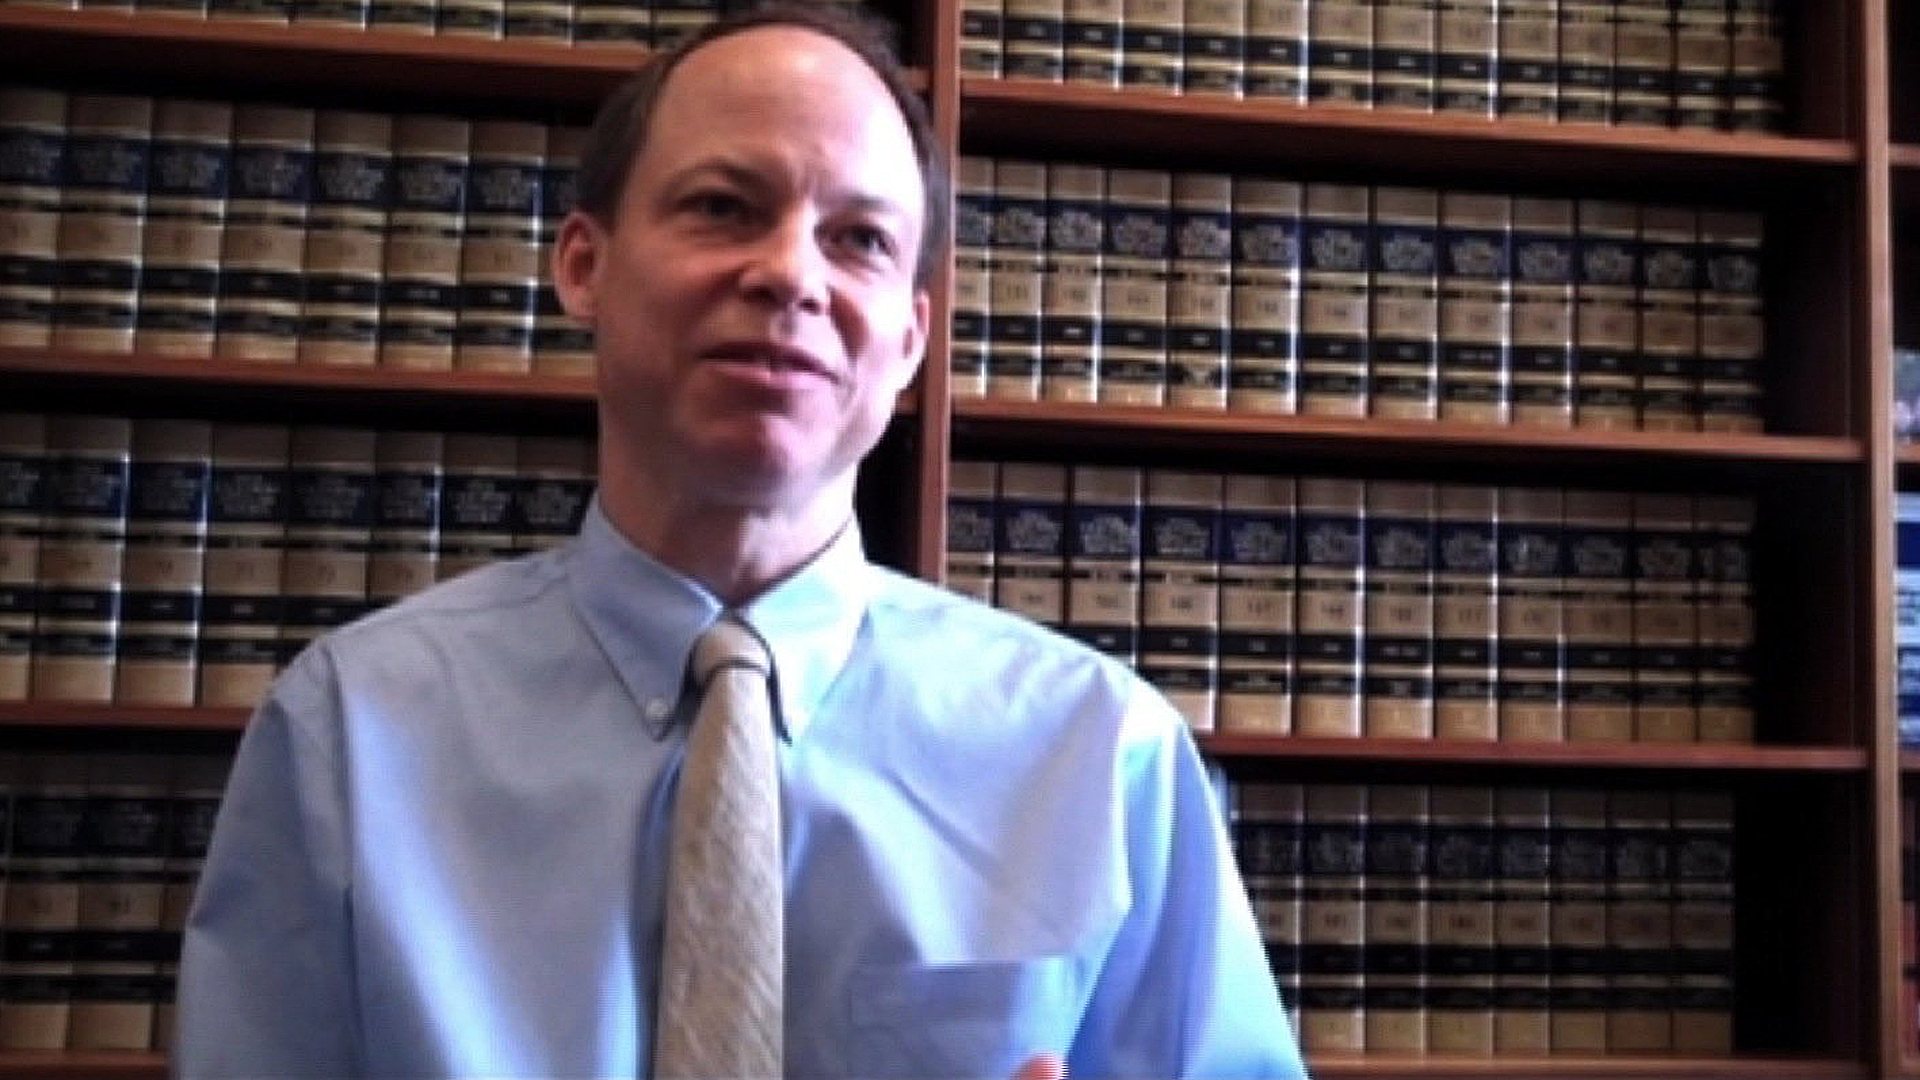 Aaron Persky, the California judge who sentenced a Stanford athlete to six months in jail for sexually assaulting an unconscious 23-year-old woman behind a dumpster (Credit: therecorder.com)